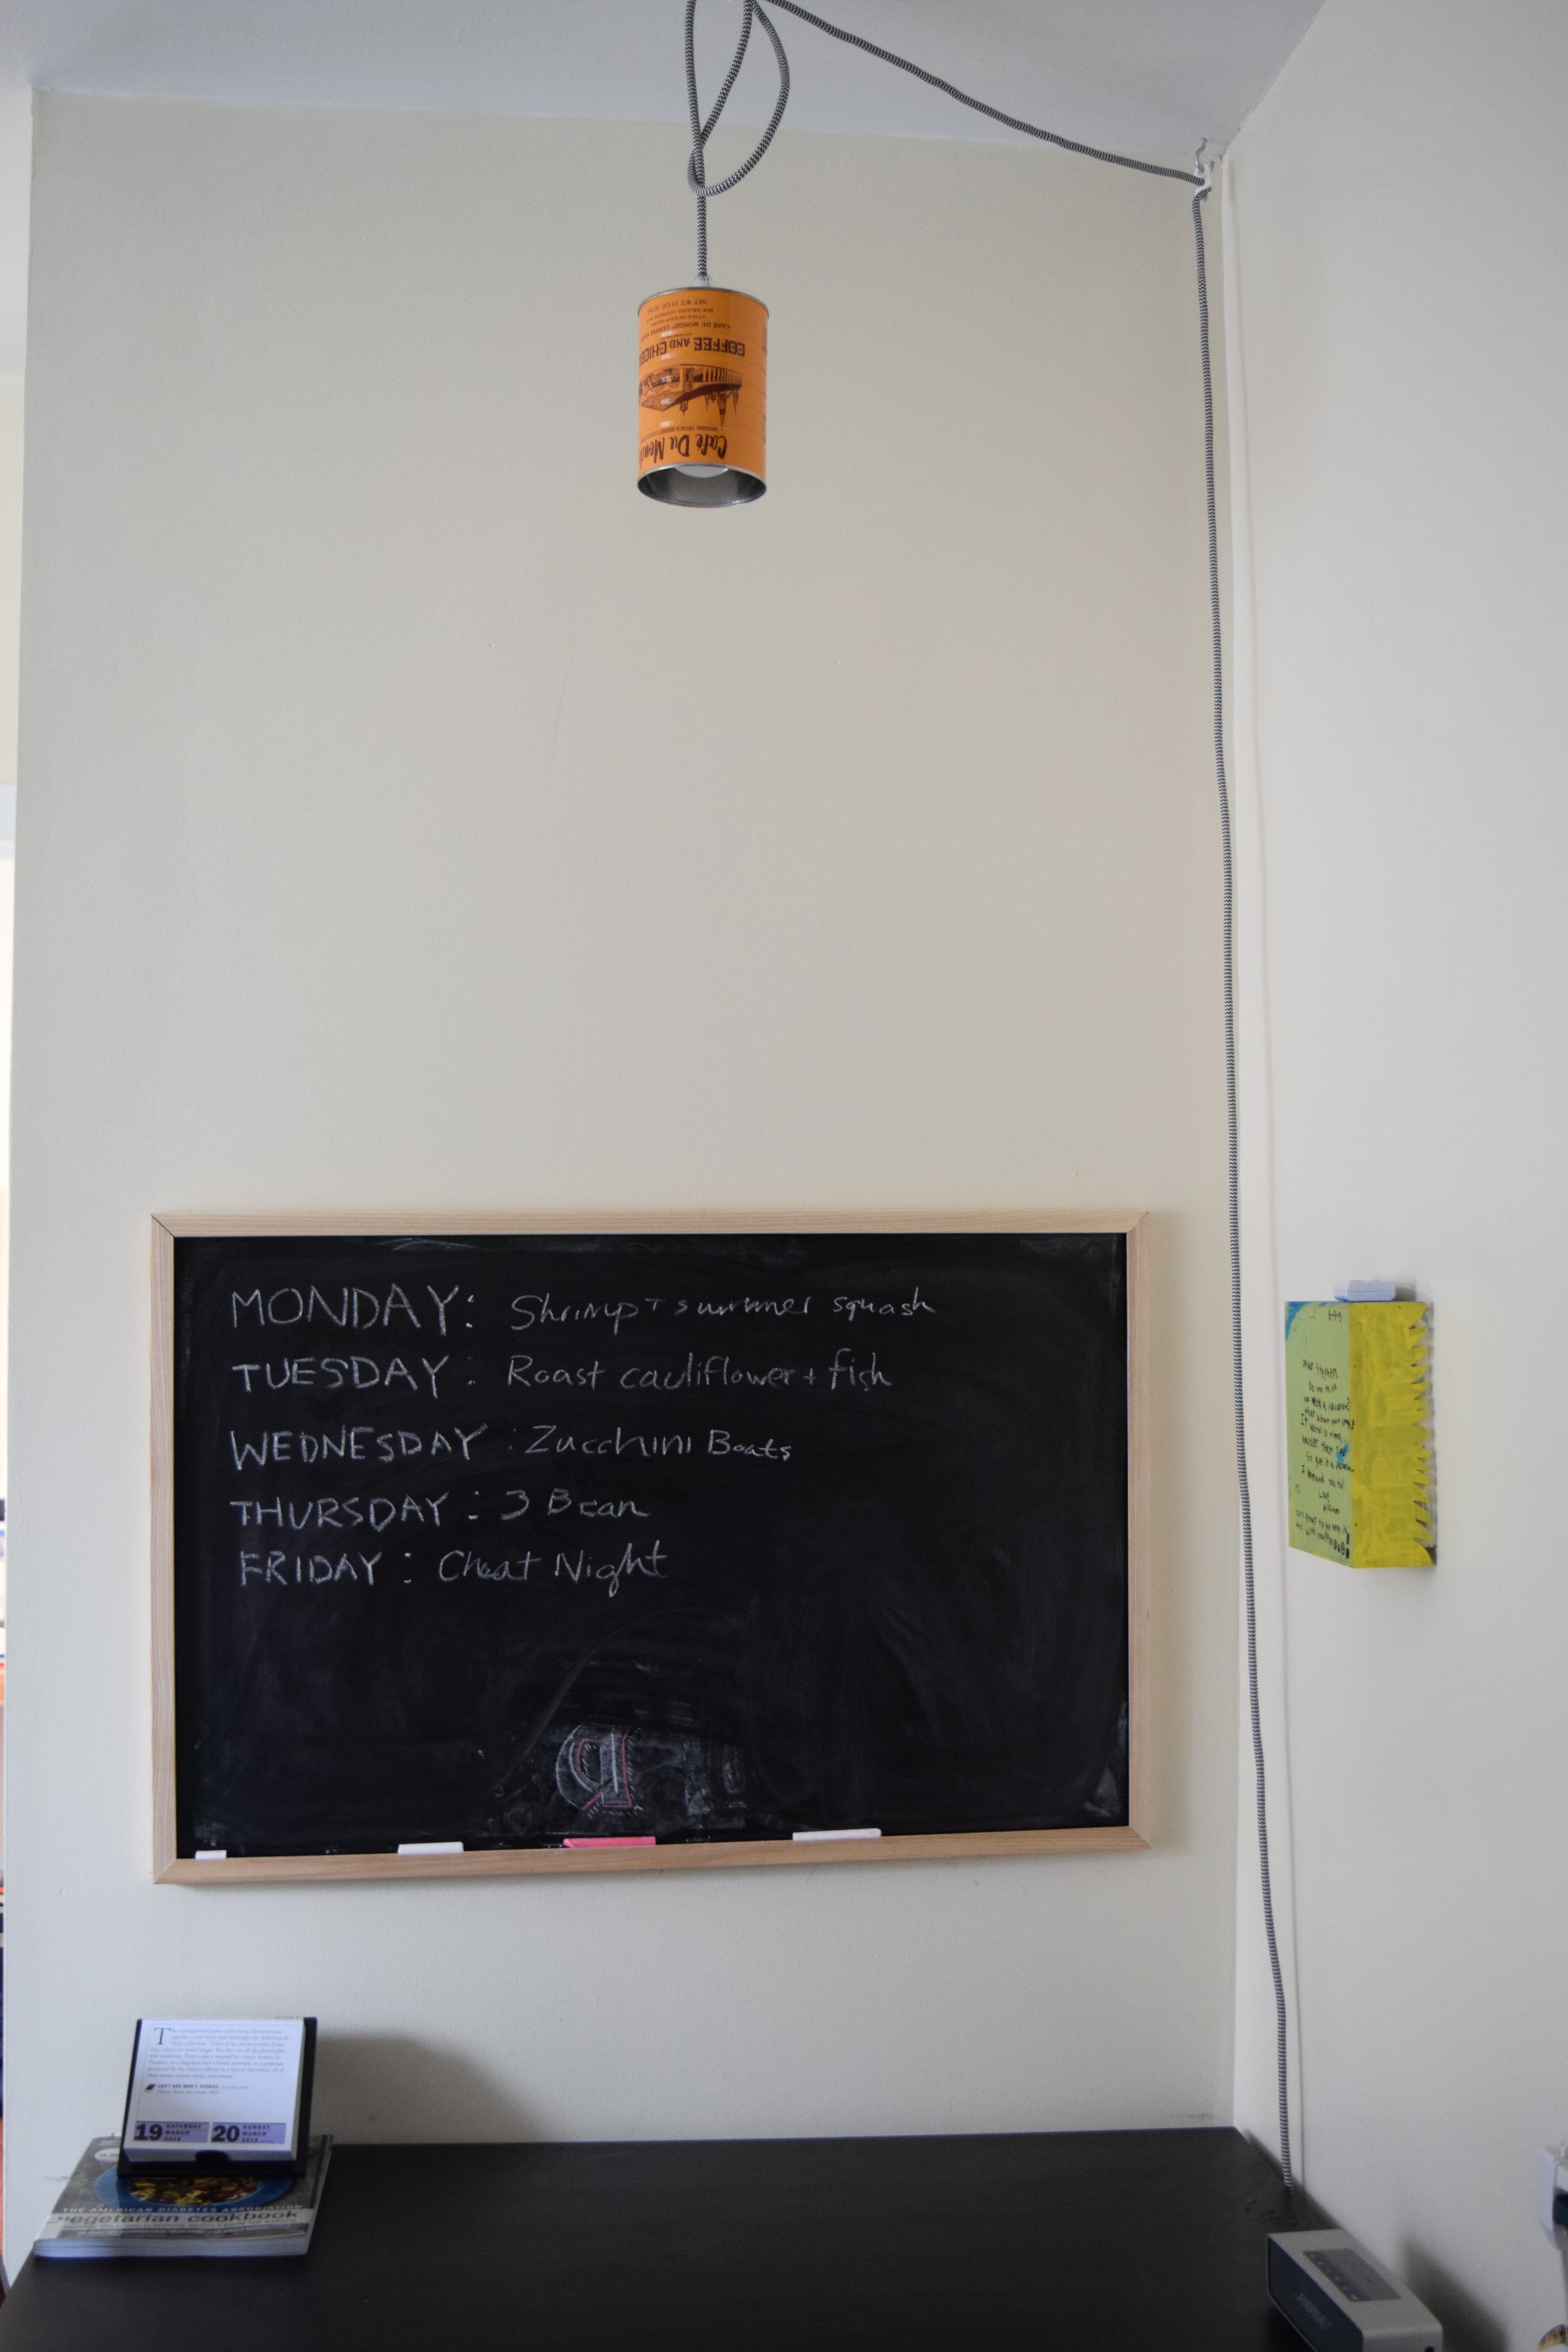 For months I had been thinking a chalkboard would be the perfect thing for our kitchen table nook. I finally bought one and hung it up this weekend. Already it's lead to some meal plan brainstorming, and hopefully it's be a perfect place for inspiration, love notes, spontaneous poetry, and more.